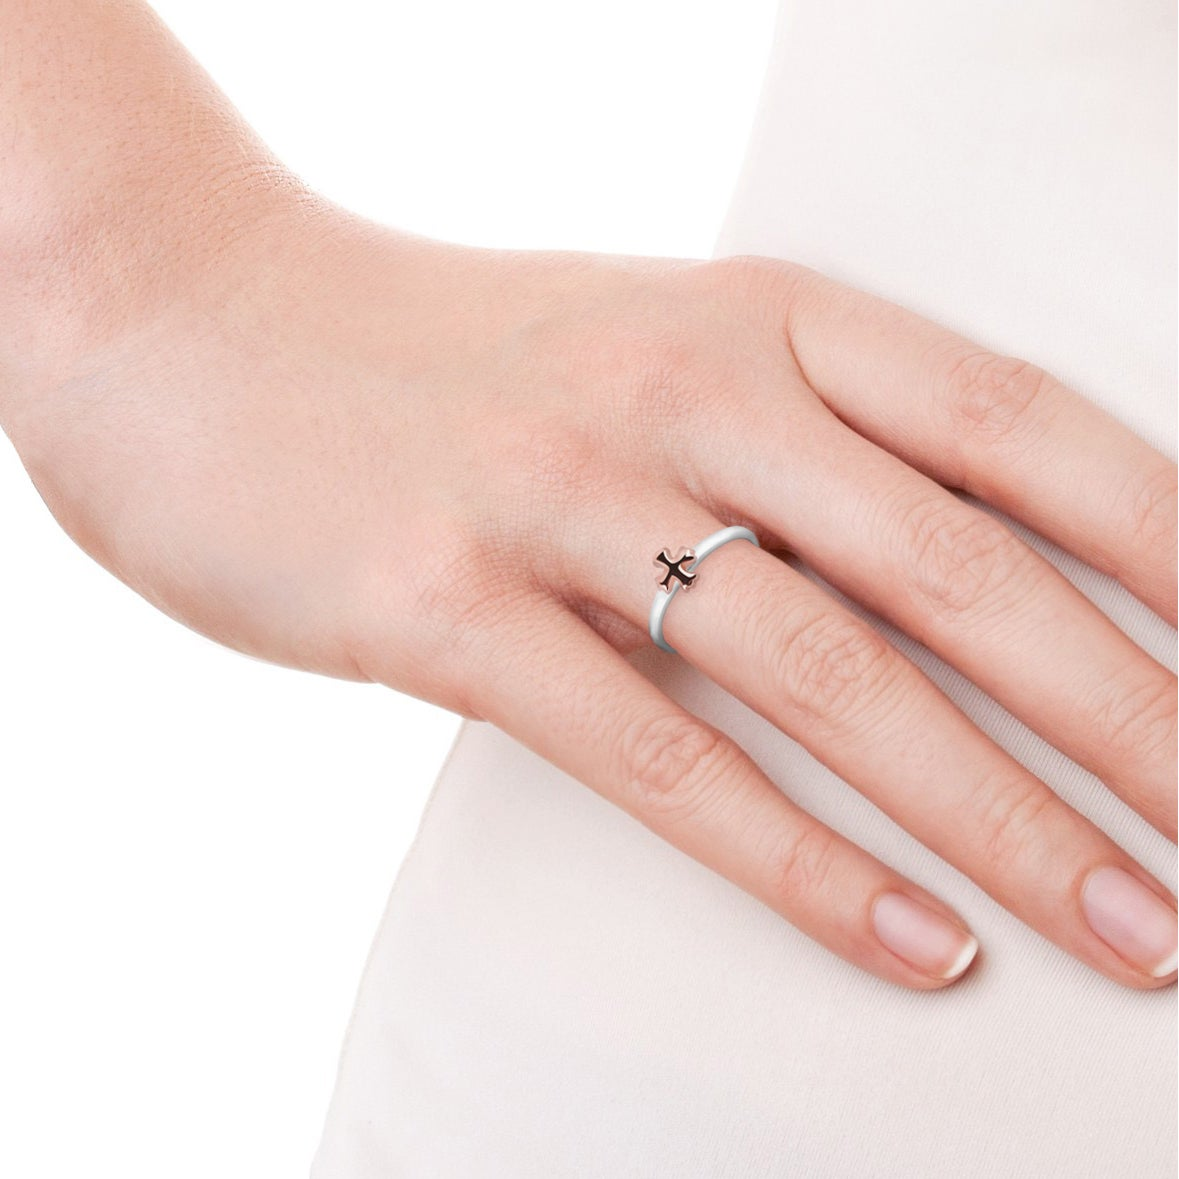 Handmade Peaceful Balanced Cross Gold Over Sterling Silver Ring ...